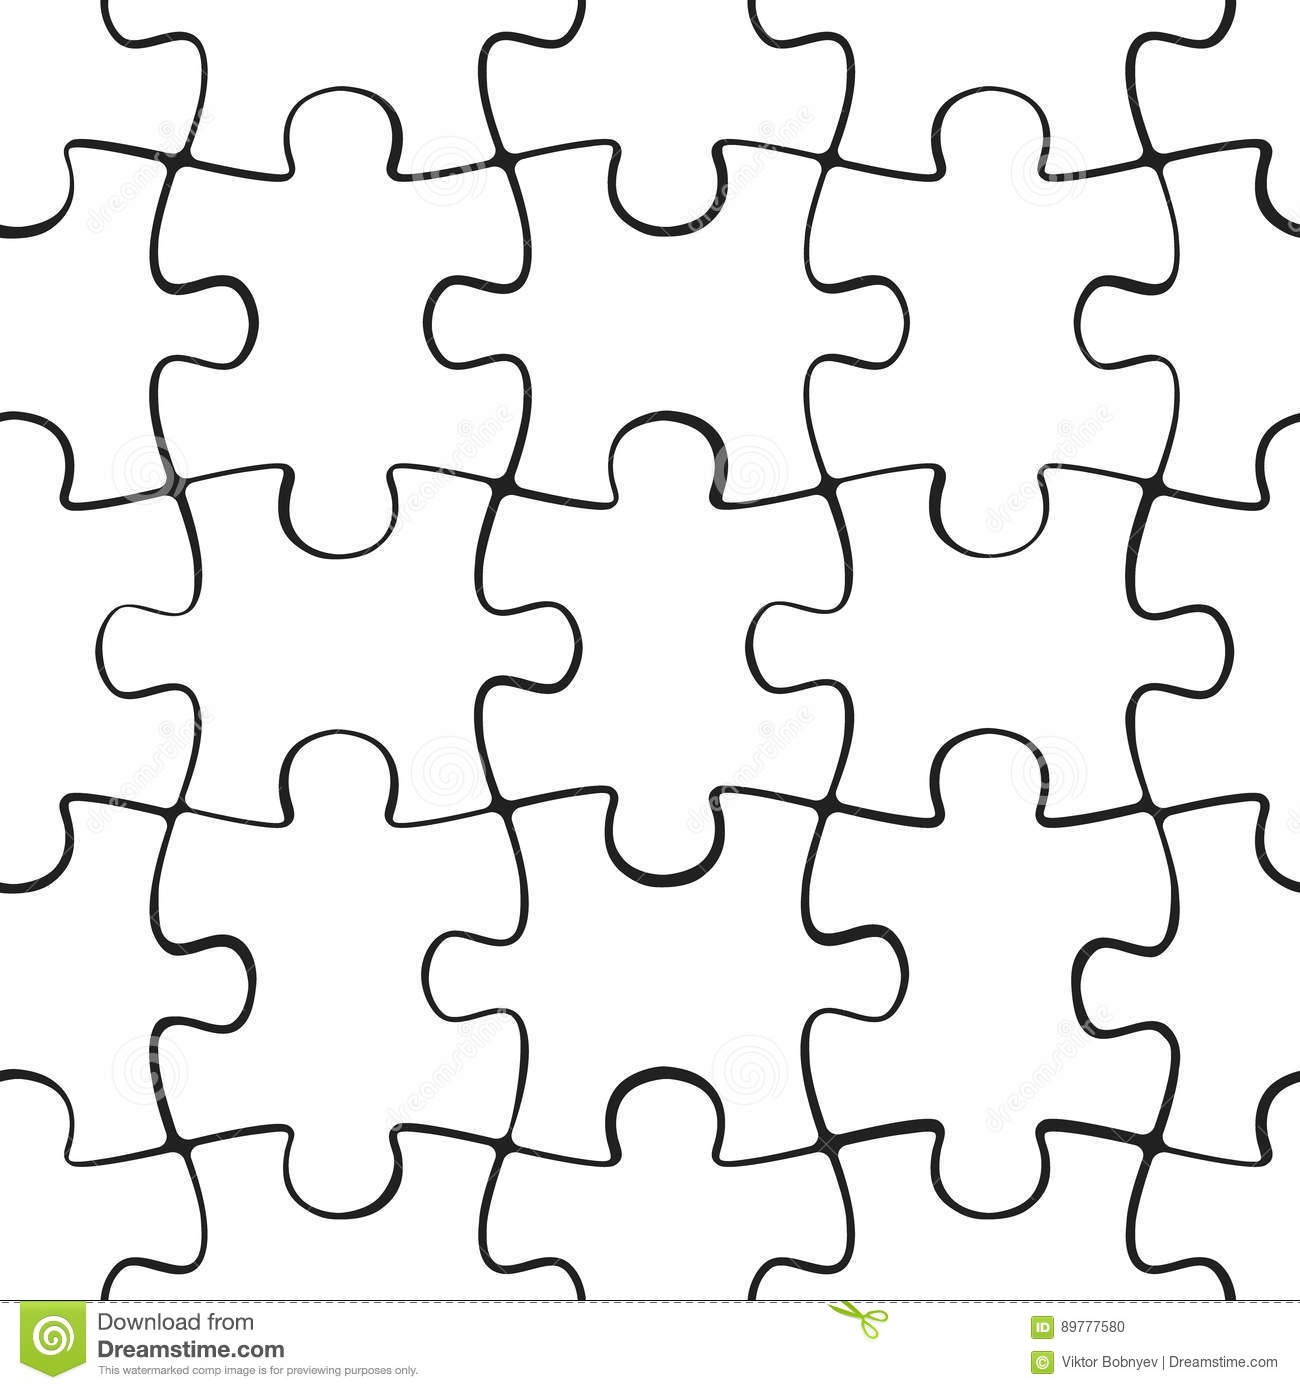 Puzzle Jigsaw Seamless Pattern Stock Vector